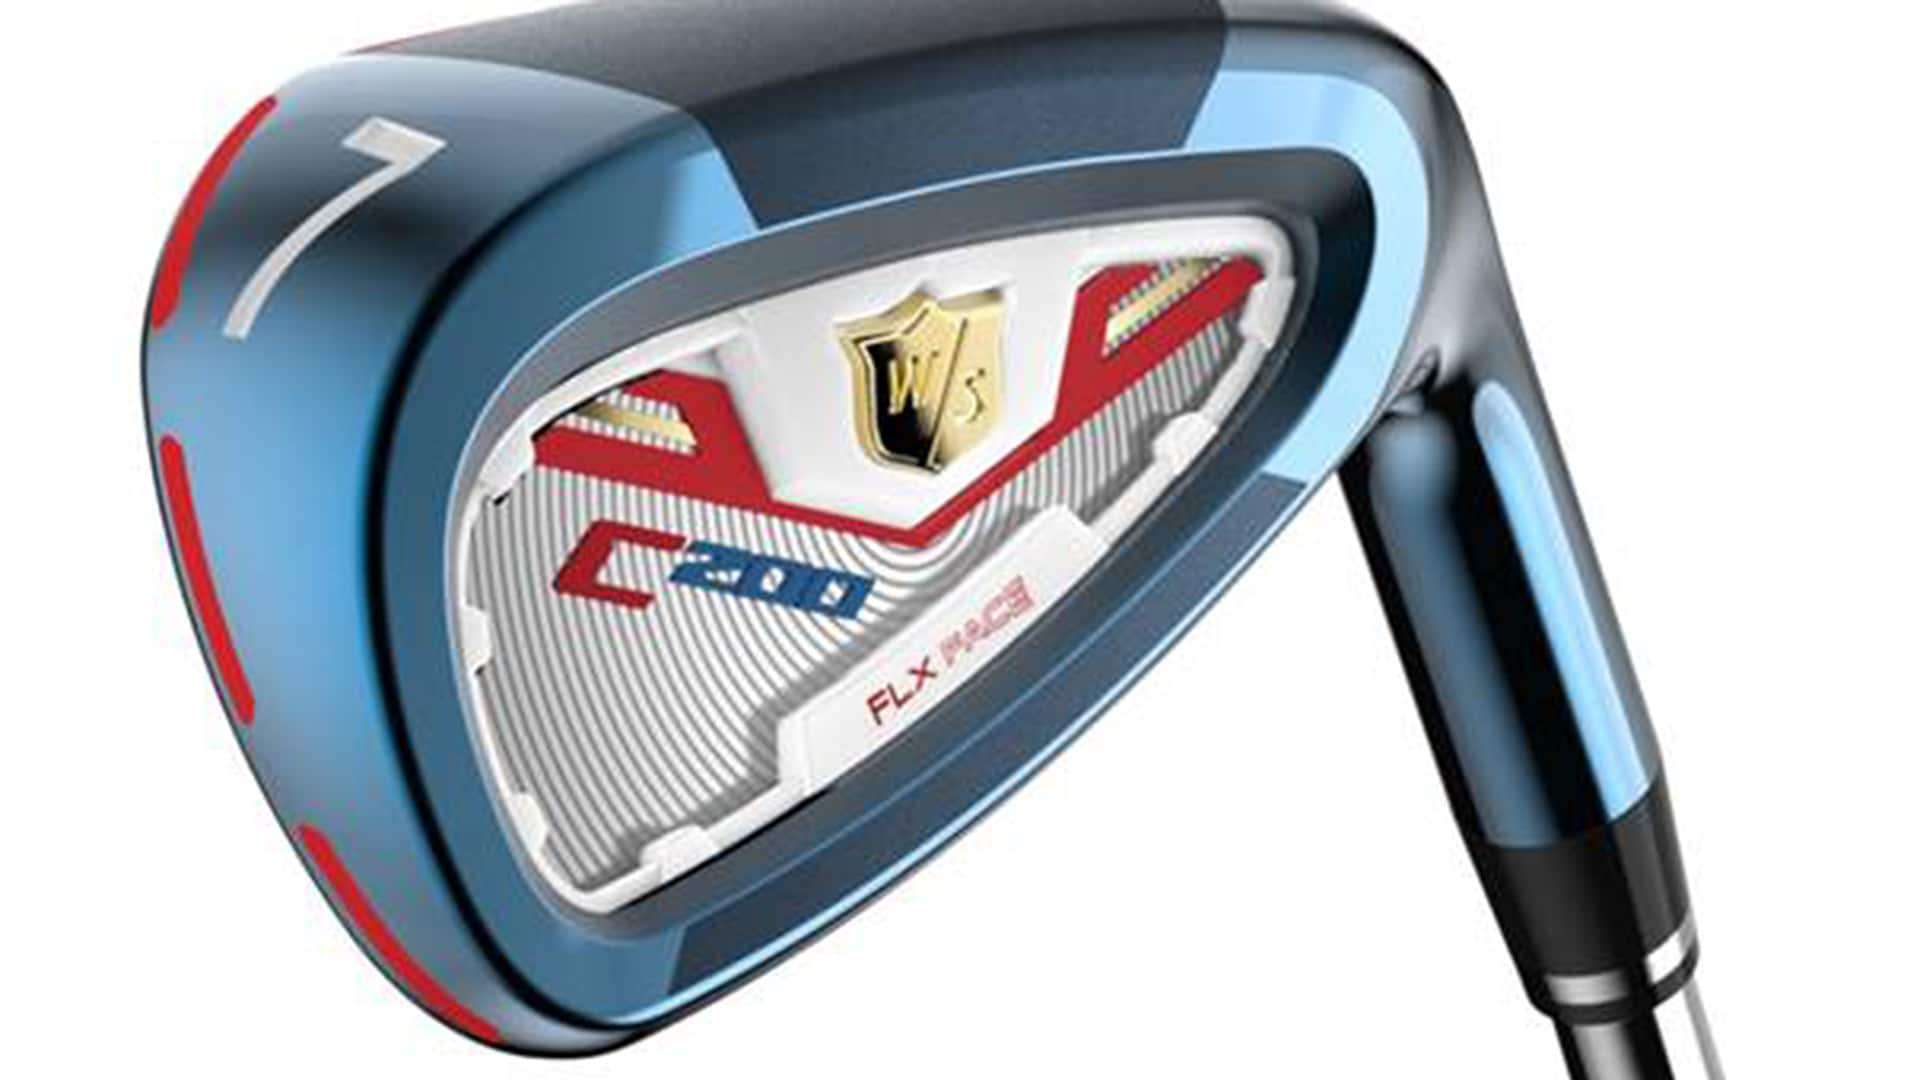 Wilson Patriotic Edition C200 Irons | Golf Channel